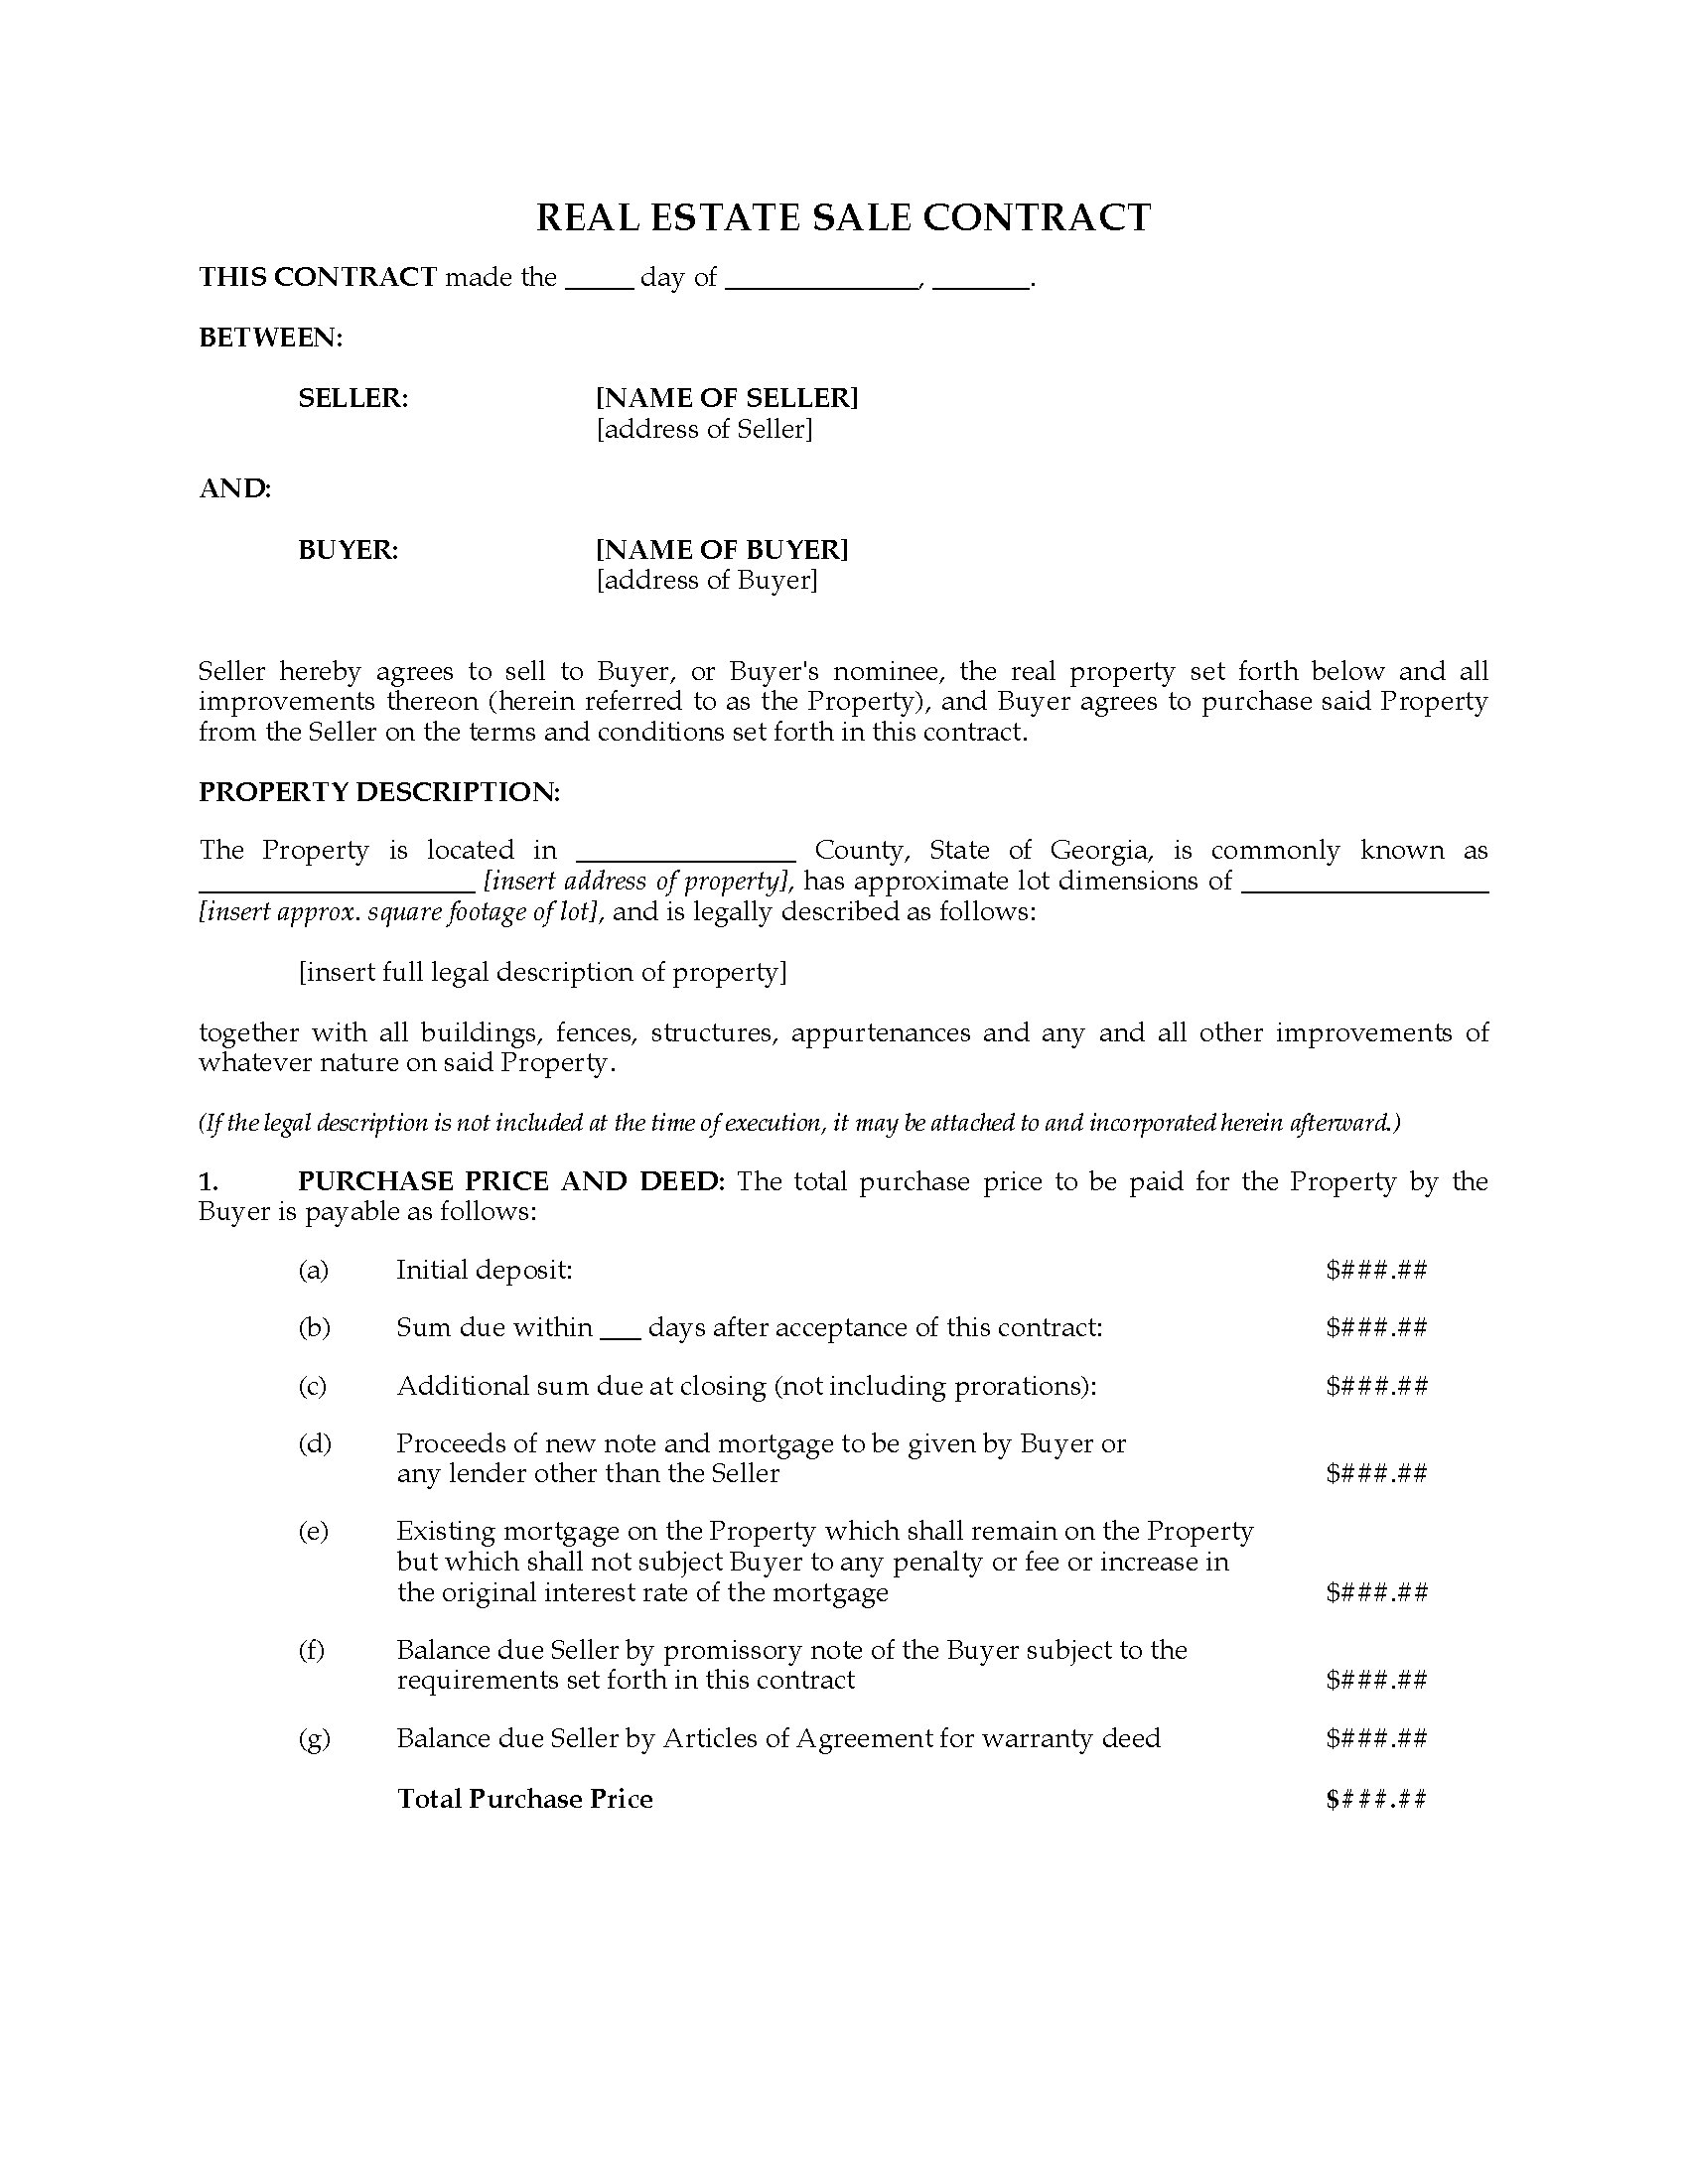 Georgia Real Estate Contract Form Bogas Gardenstaging Co Rh Bogas  Gardenstaging Co Home Sale Contract By Owner Basic Home Sale Contract